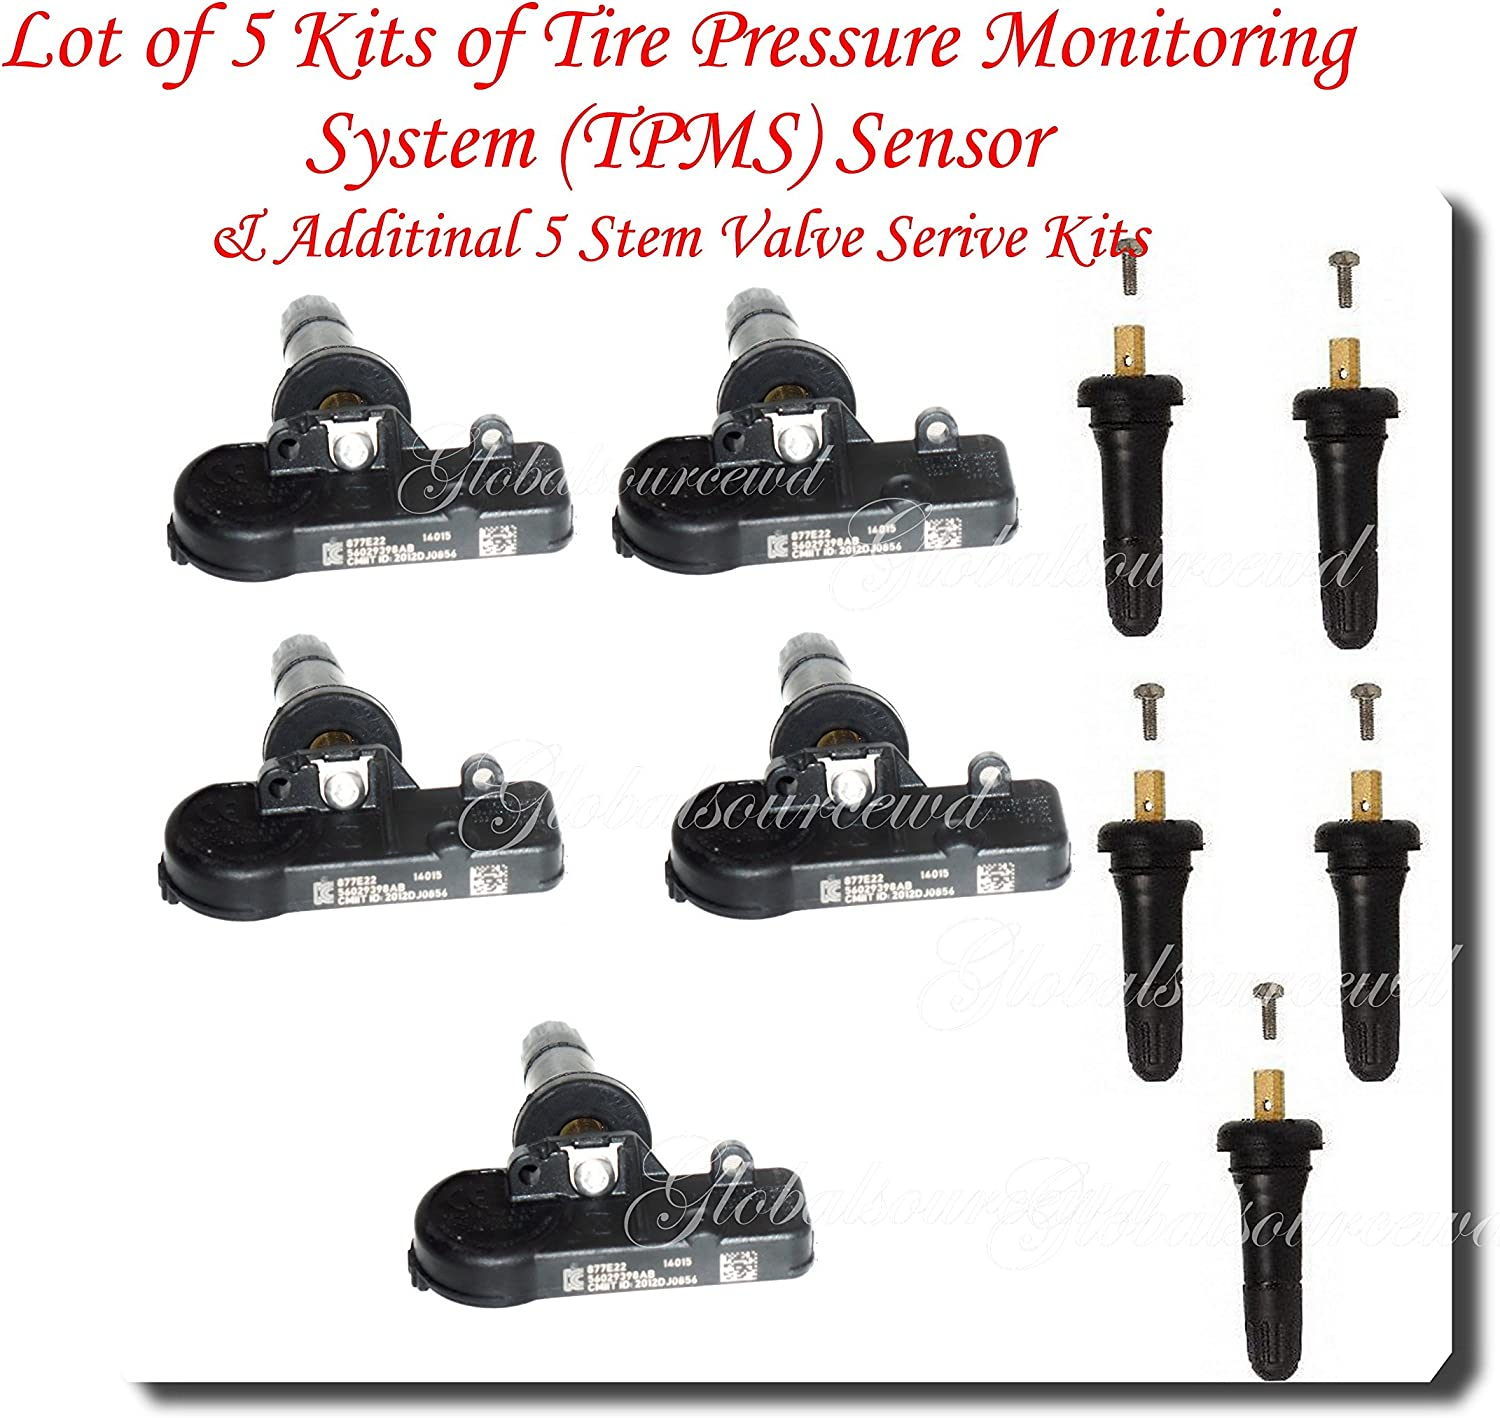 Schrader Set of trend rank 5 TPMS Tire Pressure SENSORS Free Shipping Cheap Bargain Gift TIRE